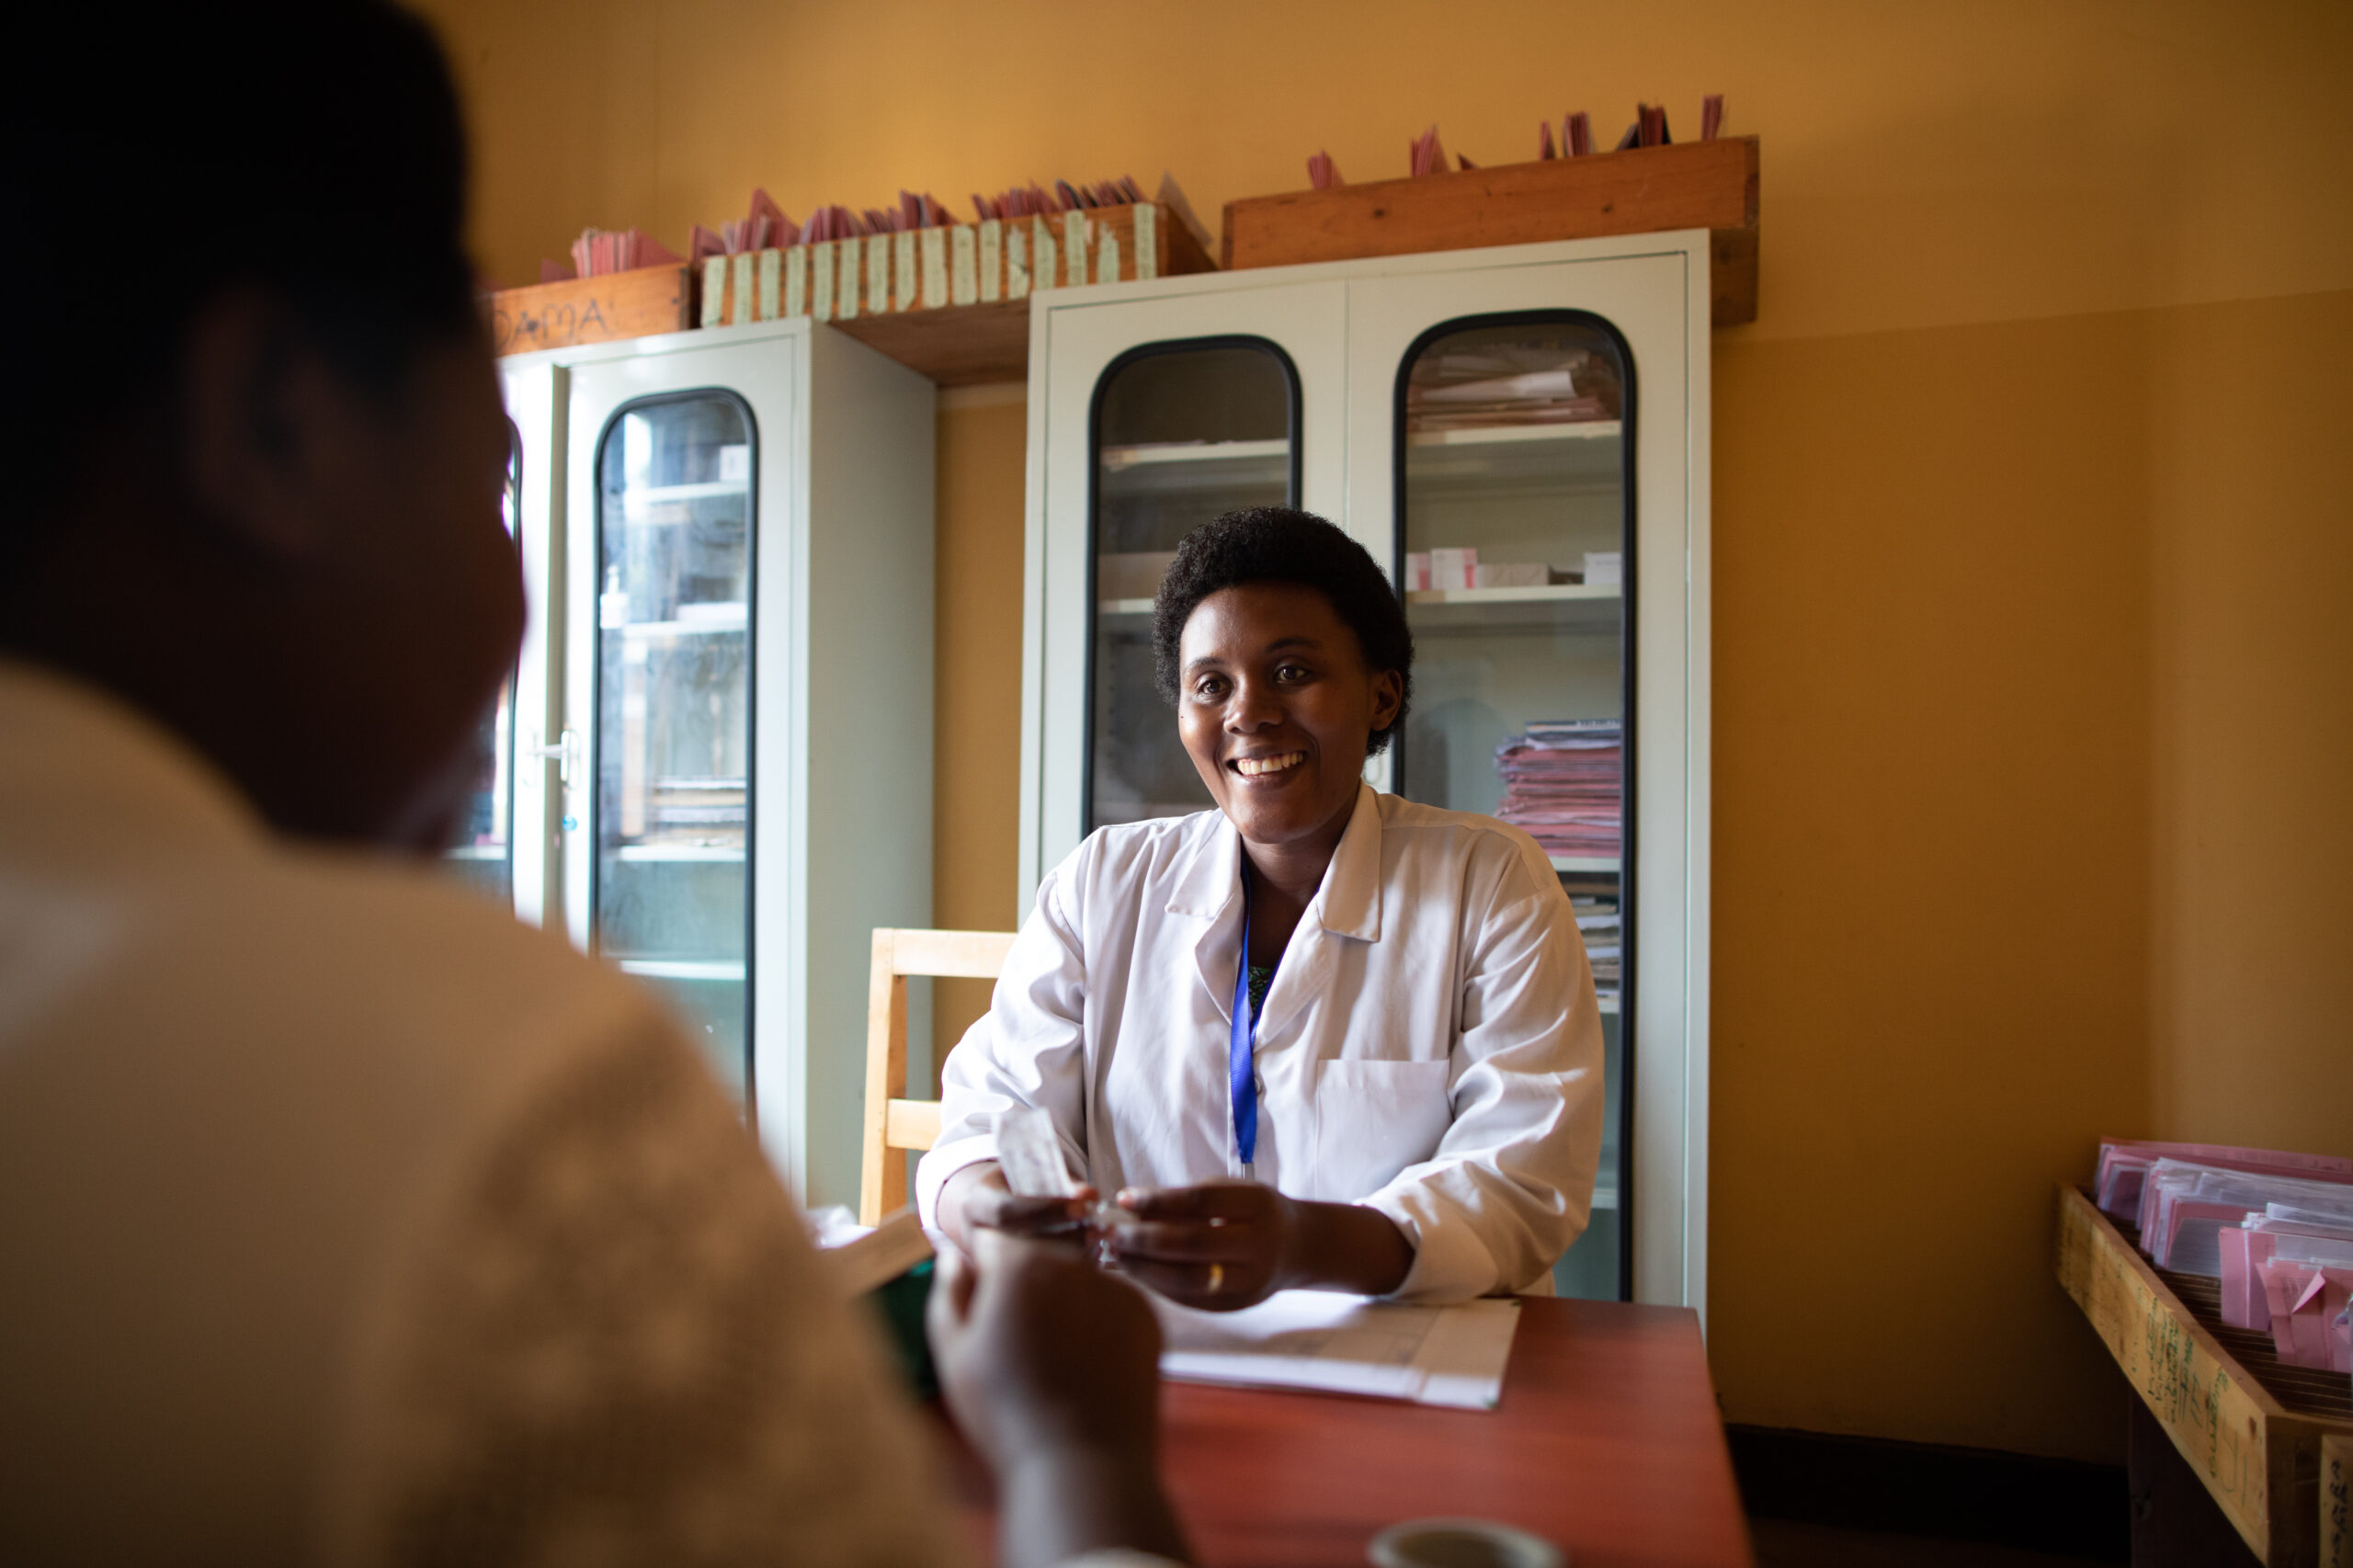 Doctor provides counseling service to patient in Rwanda.